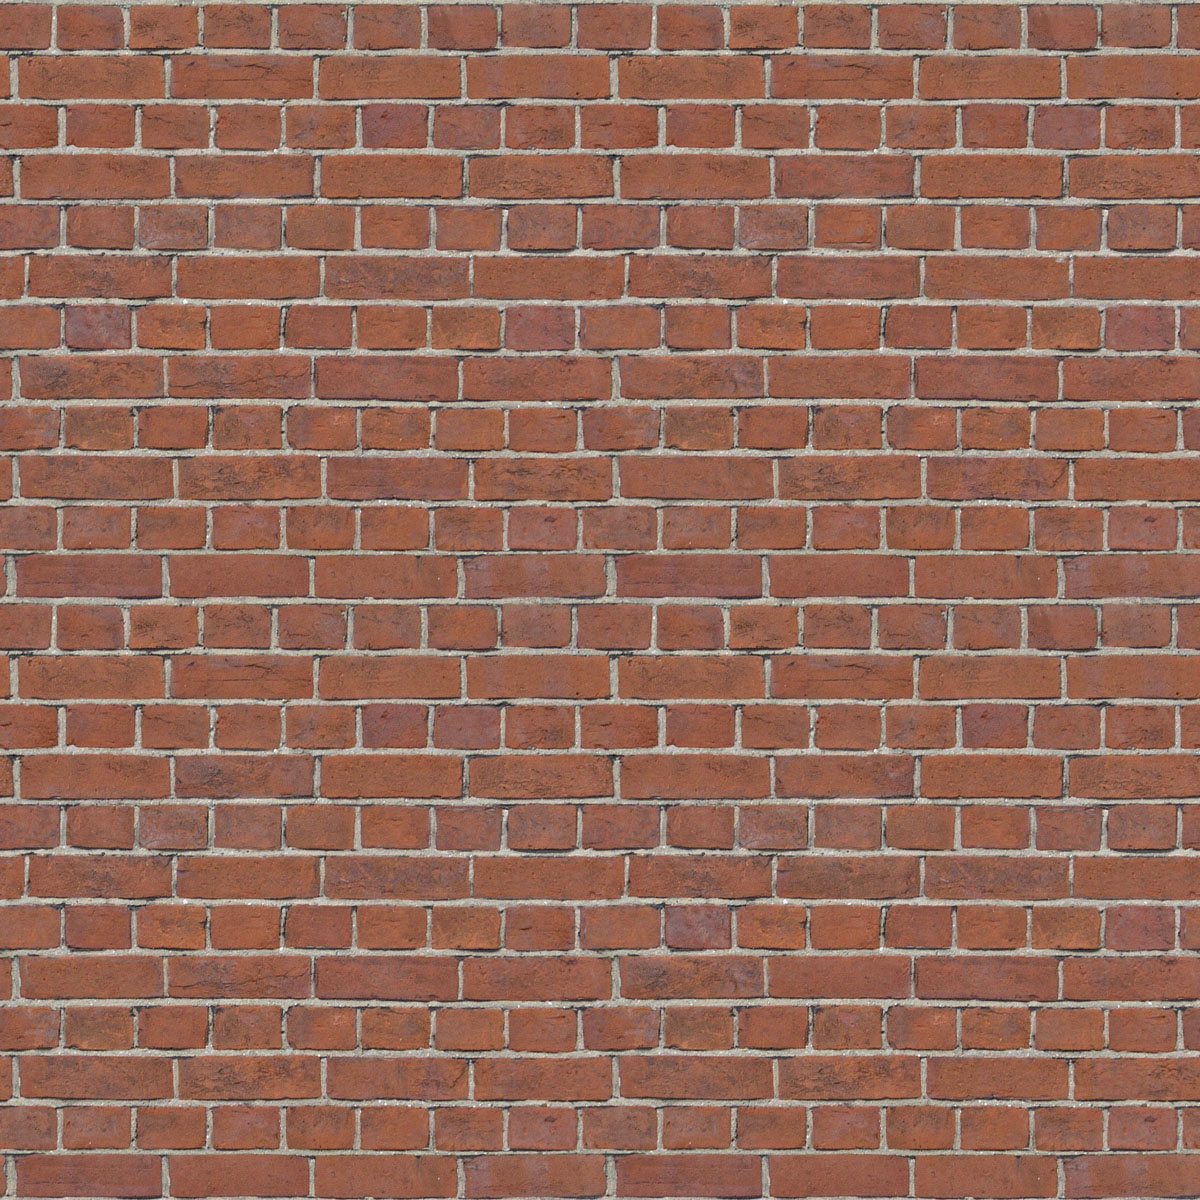 Tileable Red Brick Wall Maps Texturise Free Seamless